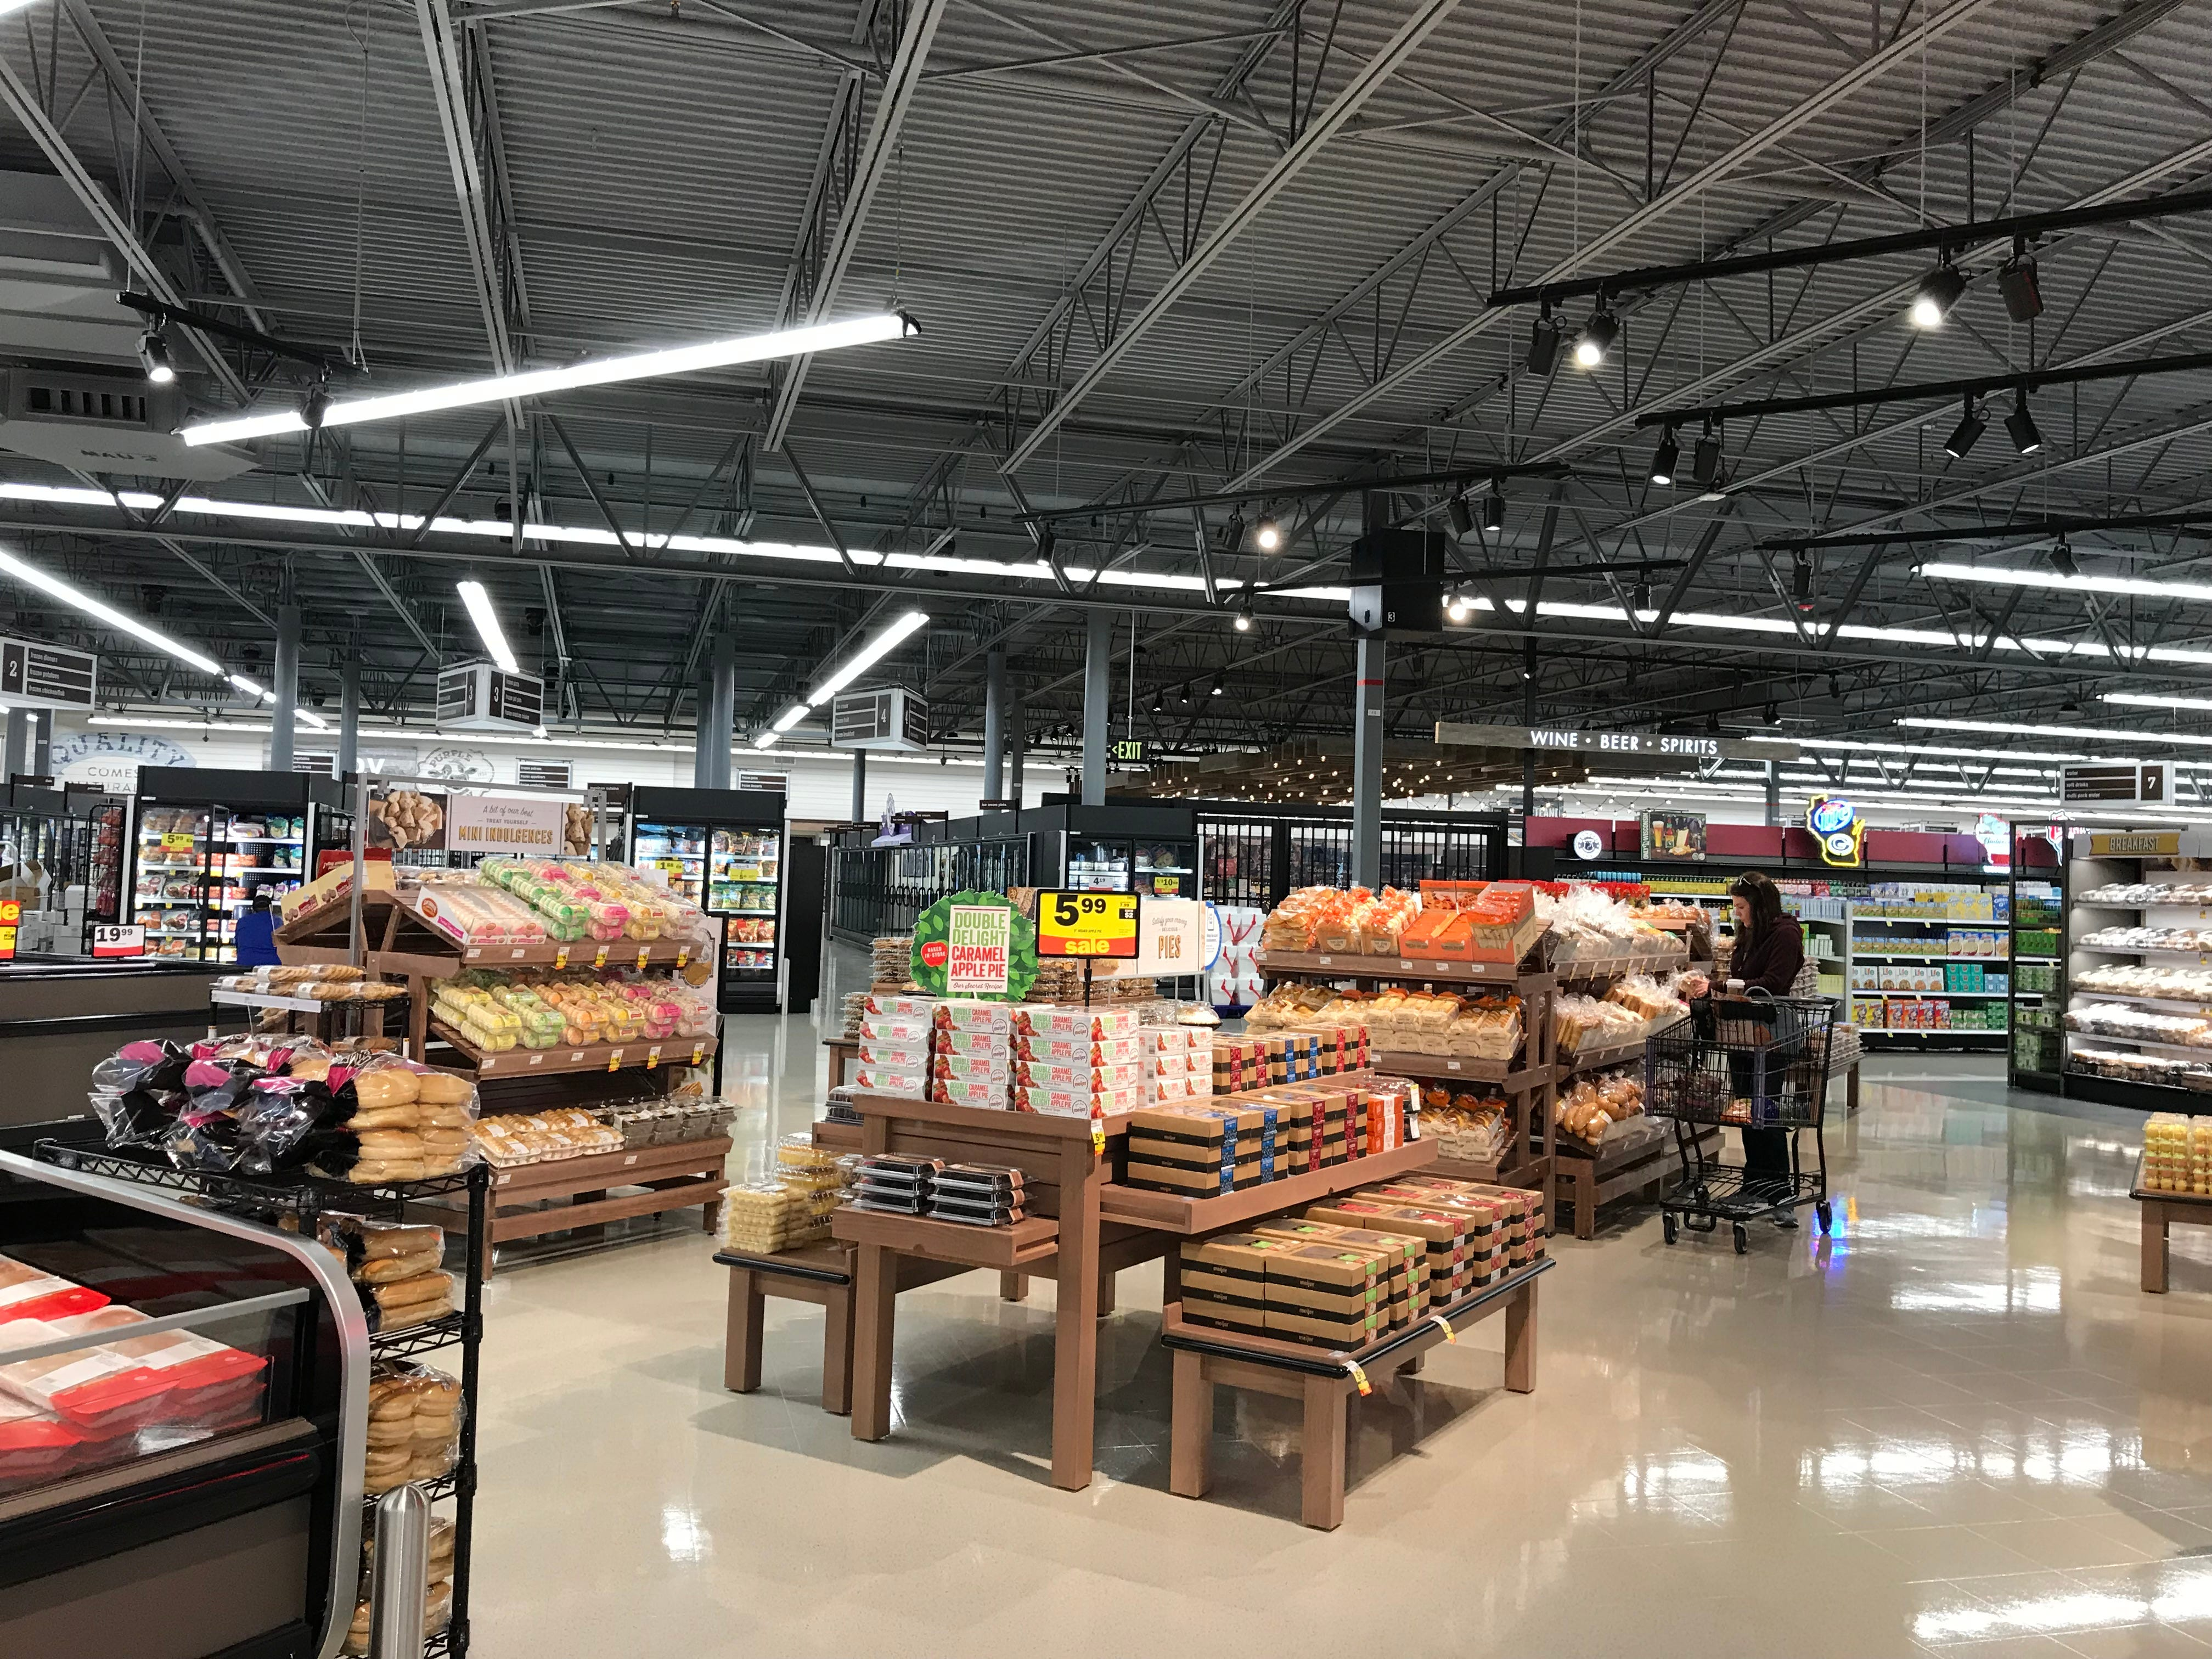 Meijer is officially open in Sheboygan. The new store features a butcher section, deli, bakery and more grocery products.